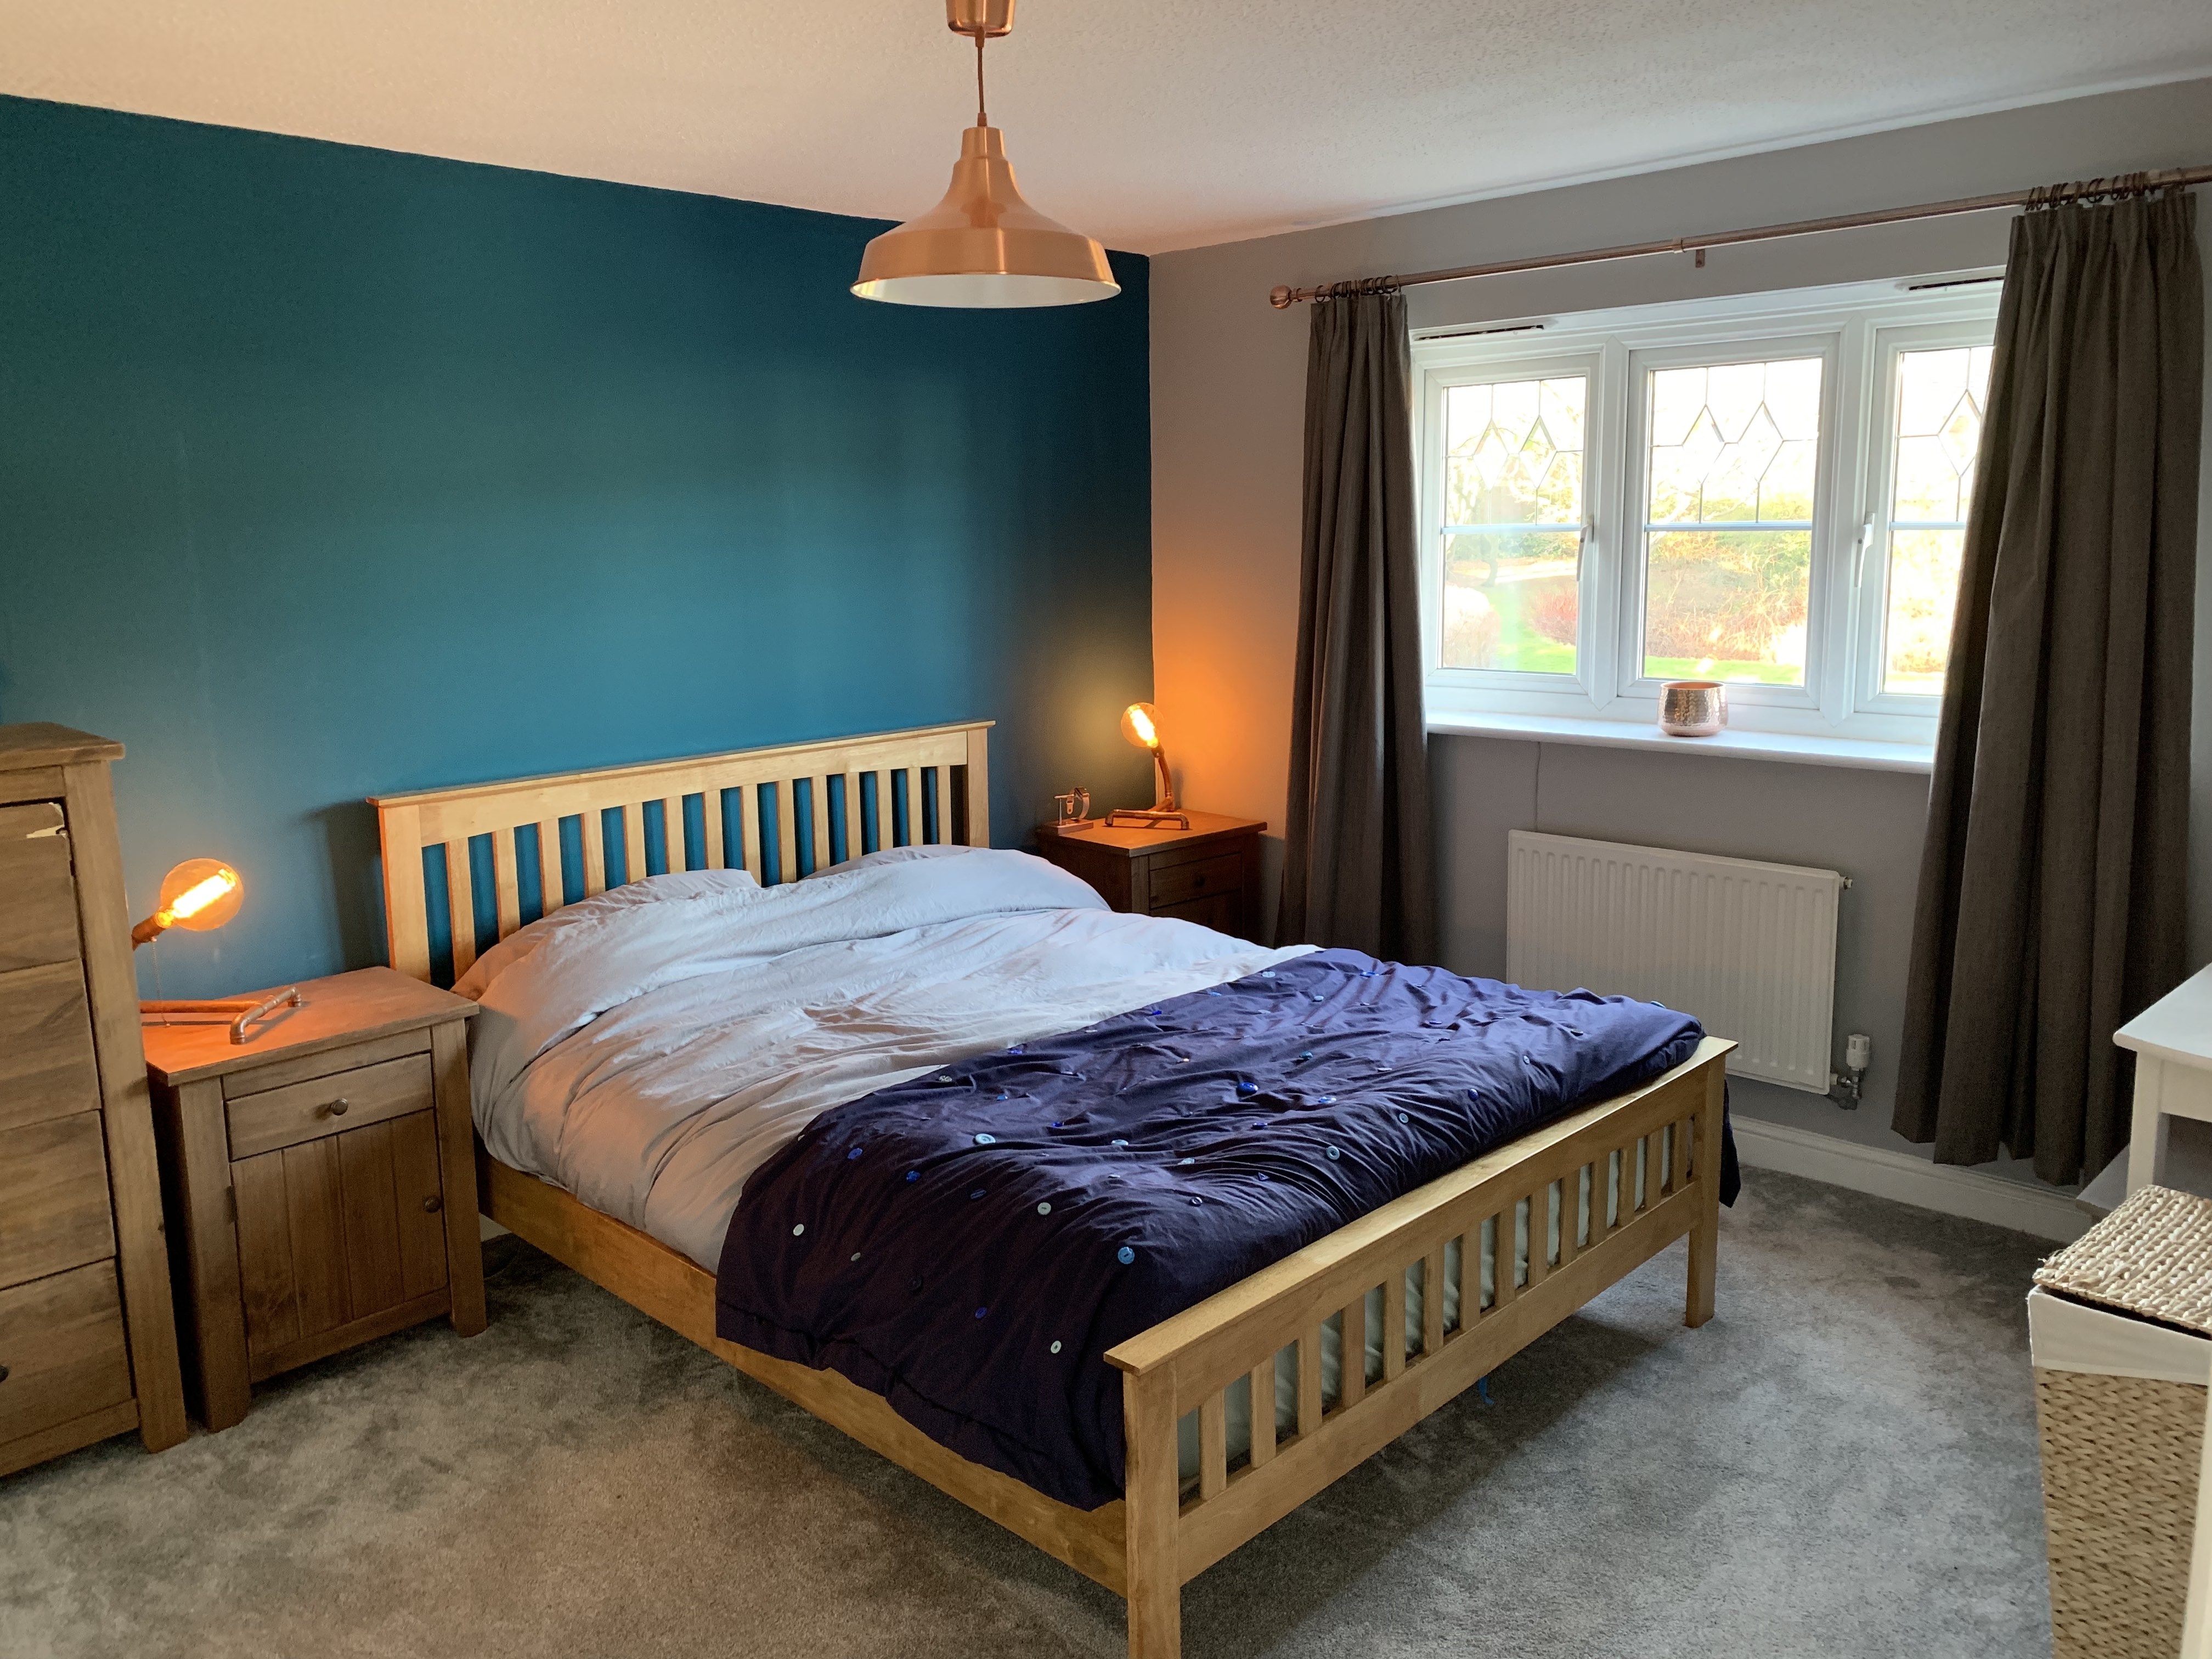 Standout Pieces In Our Teal And Copper Bedroom